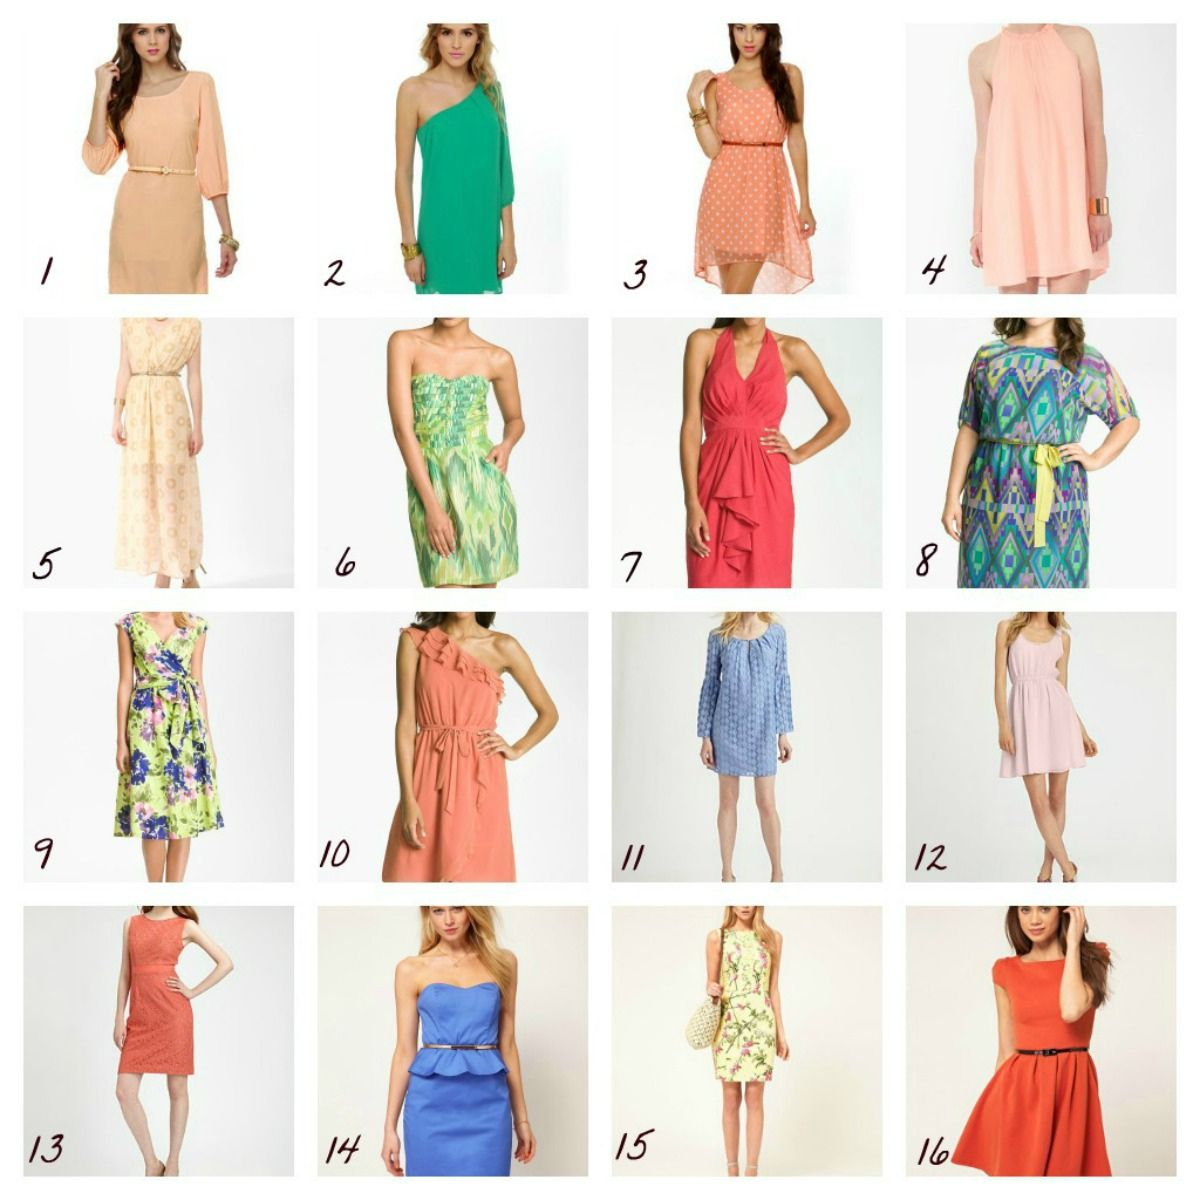 Dresses to wear to summer wedding   Dress to Wear to A Summer Wedding  Womenus Dresses for Wedding